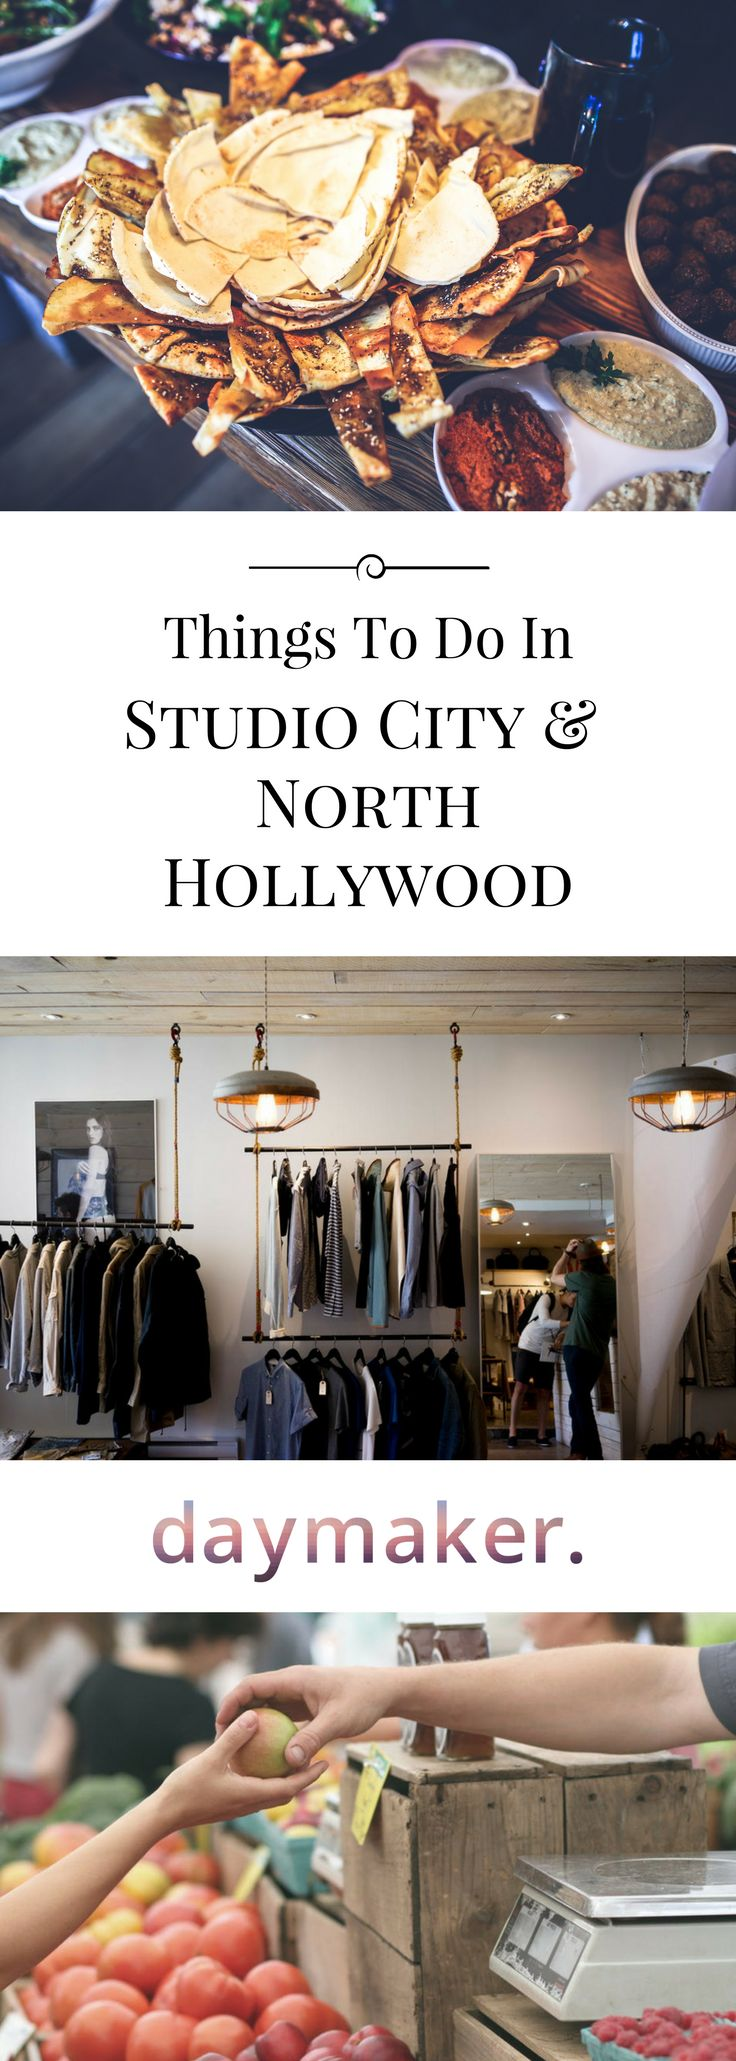 Looking for things to do in Studio City and North Hollywood? From the emerging arts district in Noho to the amazing places to eat in Studio City, there is so much to do and see in this part of Los Angeles!